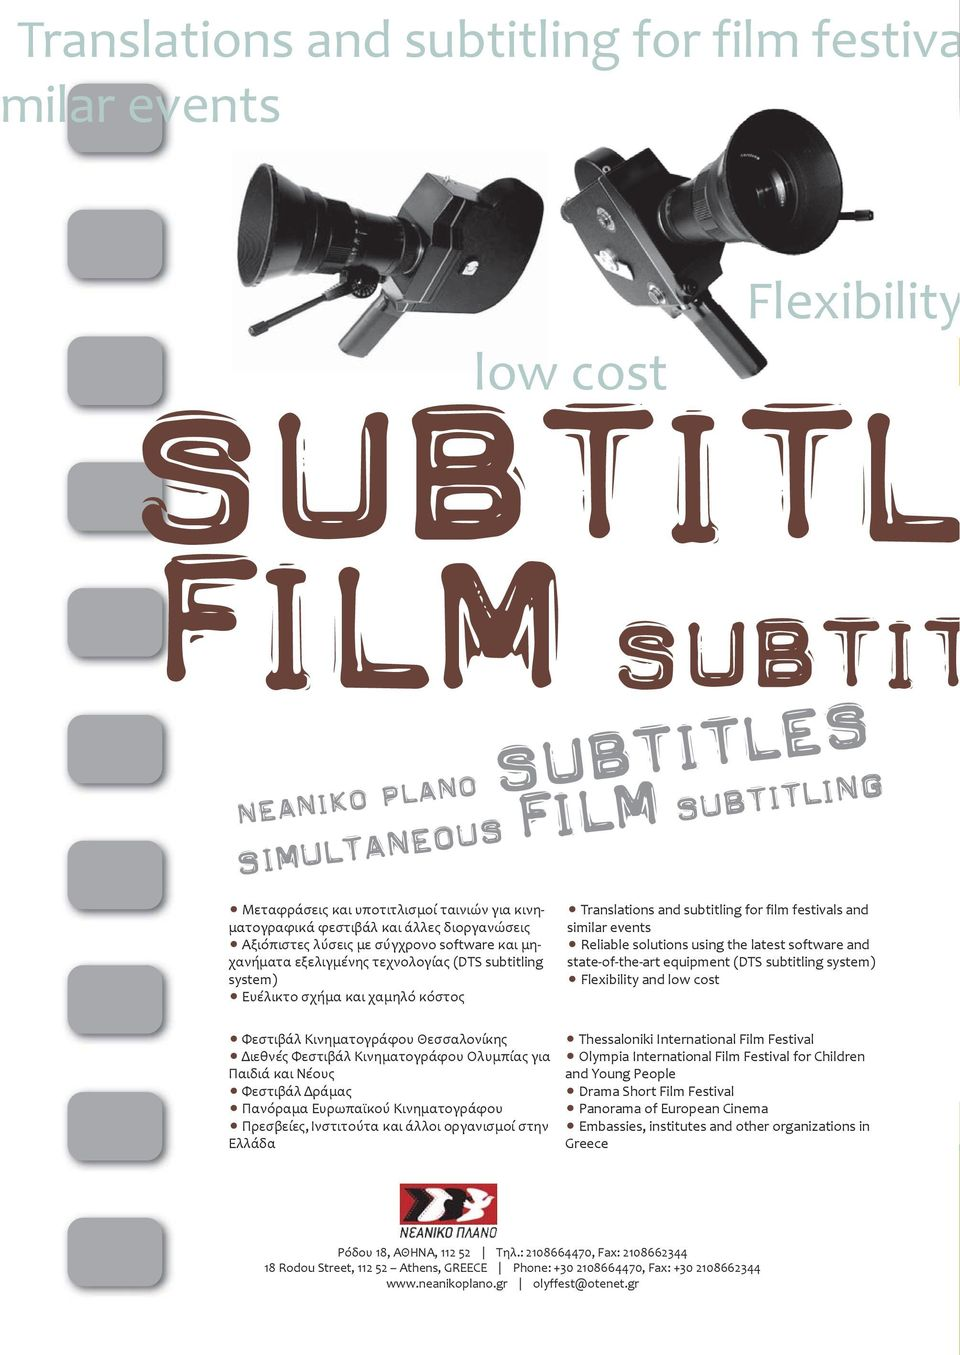 subtitling for film festivals and similar events Reliable solutions using the latest software and state-of-the-art equipment (DTS subtitling system) Flexibility and low cost Φεστιβάλ Κινηματογράφου